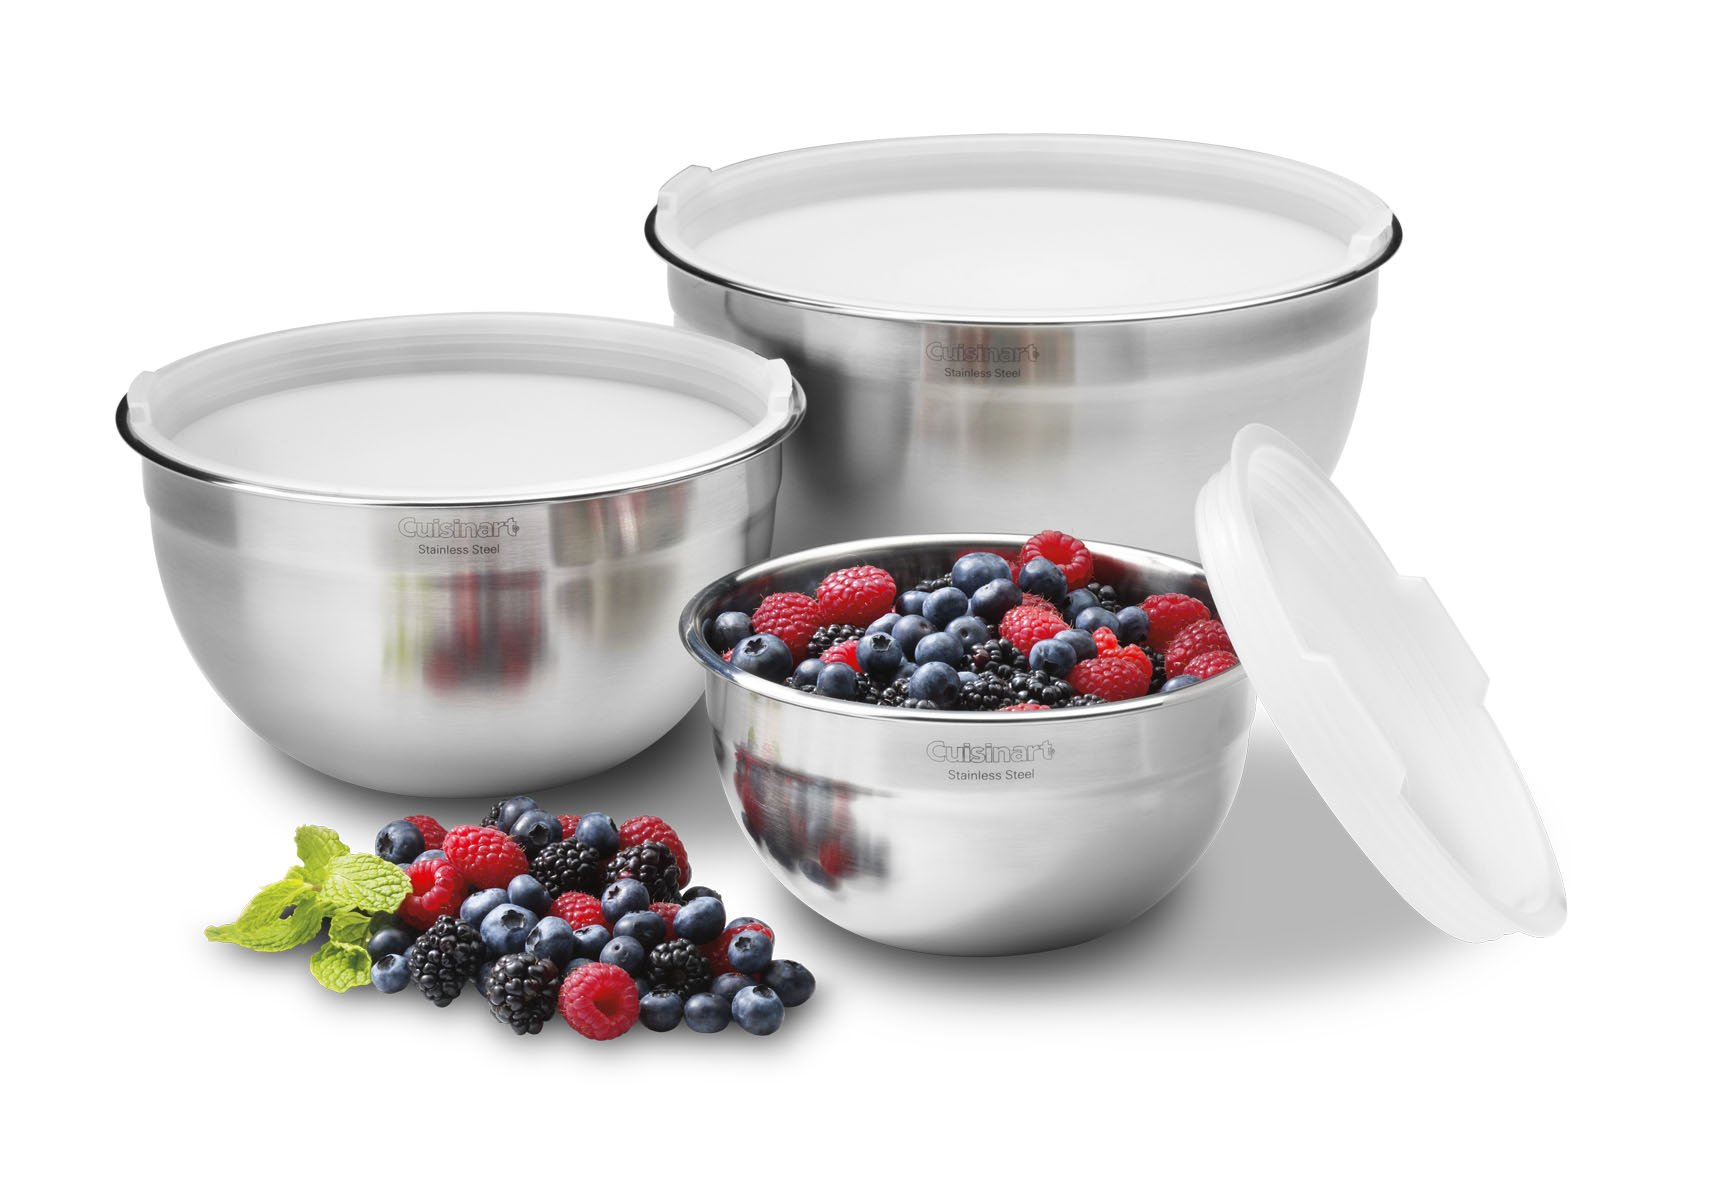 Cuisinart CTG-00-SMB Stainless Steel Mixing Bowls with Lids, Set of 3 by Cuisinart (Image #2)